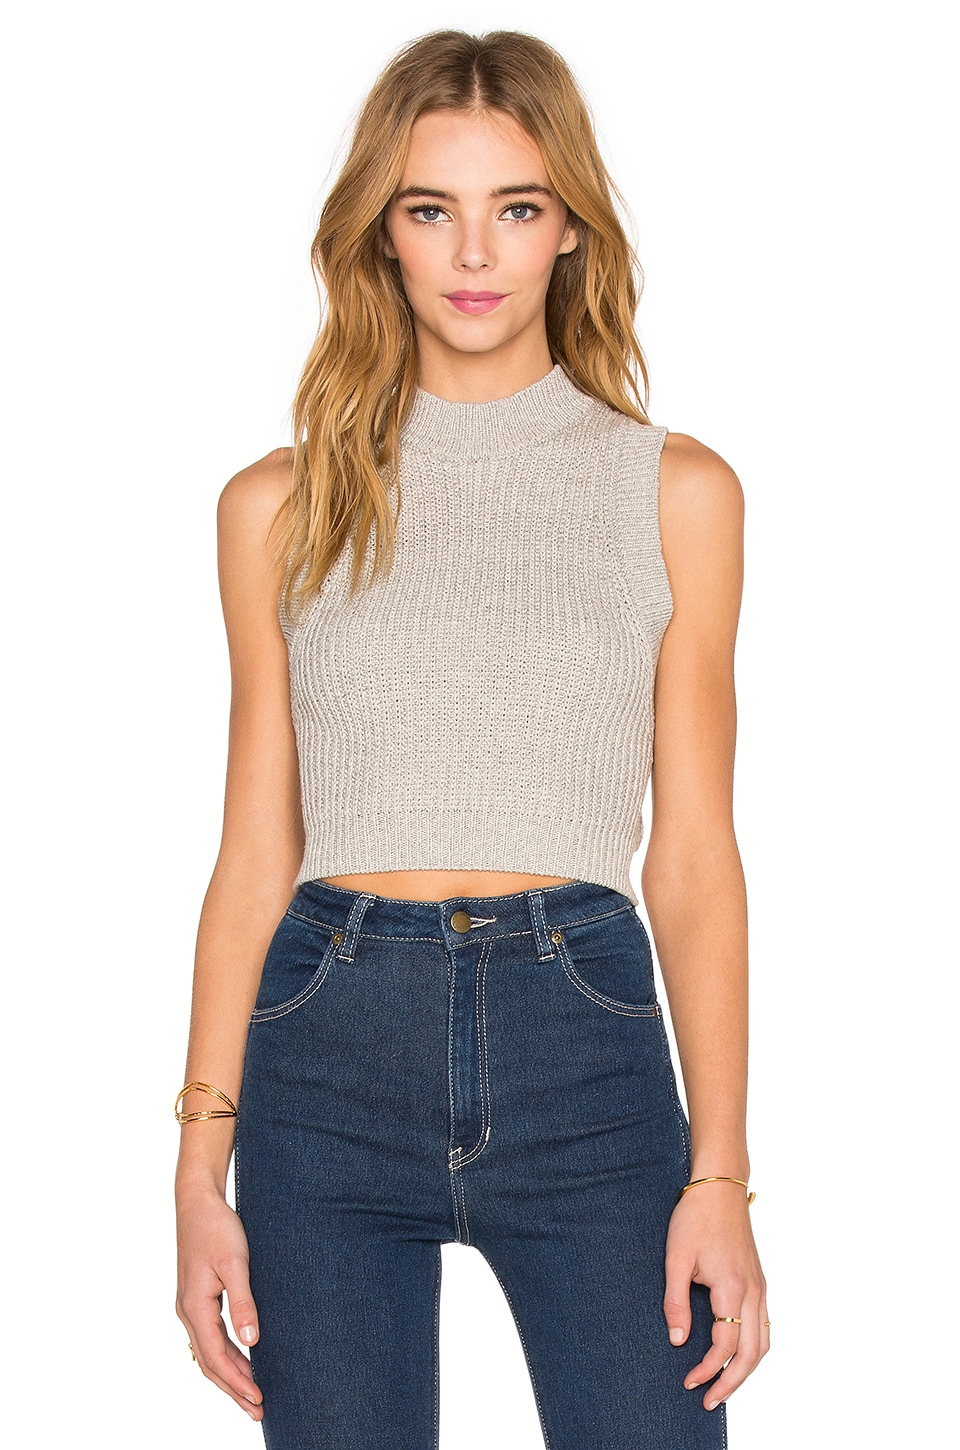 ROLLA'S Knit Crop Tank in Grey